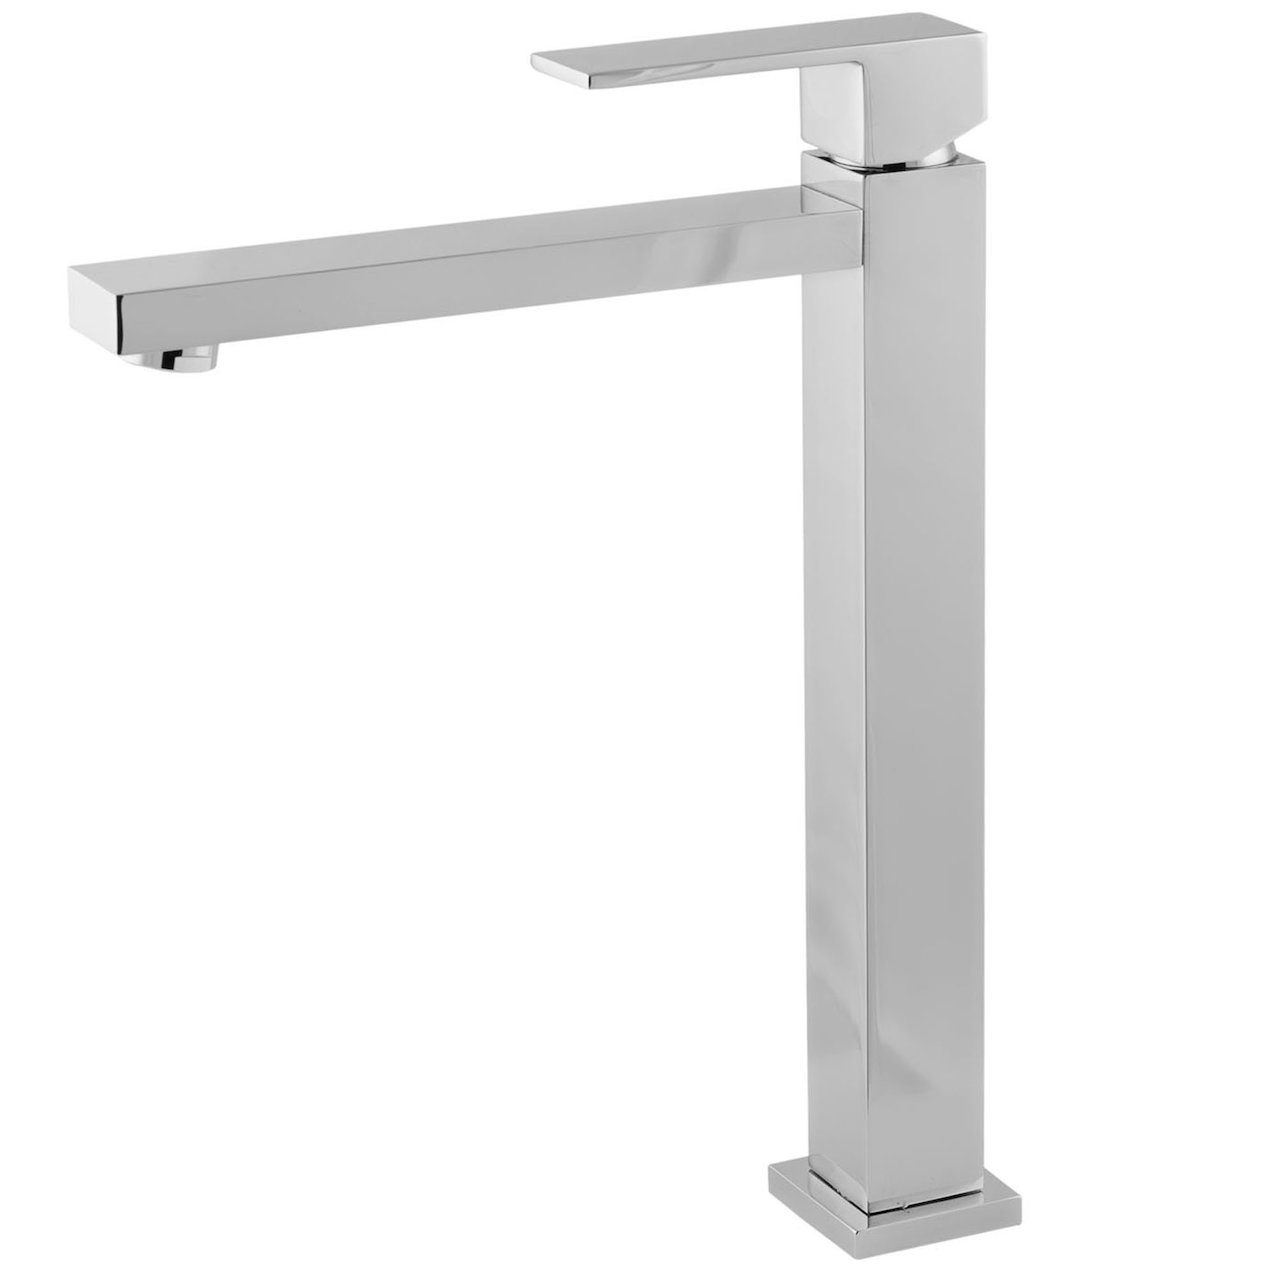 High Washbasin Mixer Quadra